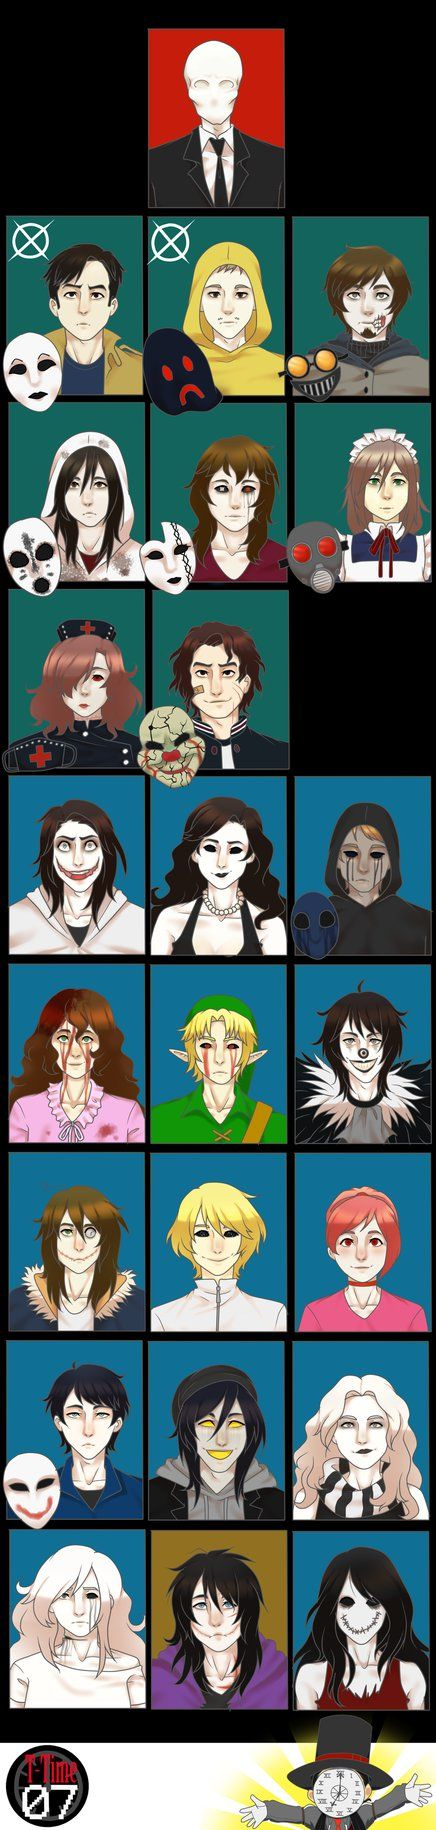 Slenderman © Masky & Hoody © Marble Hornets Slender-verse/proxy Ticci-Toby © Kate the Chaser © Slender:The Arrival game Nemesis © Mary the Maid © Nurse Ann © ...